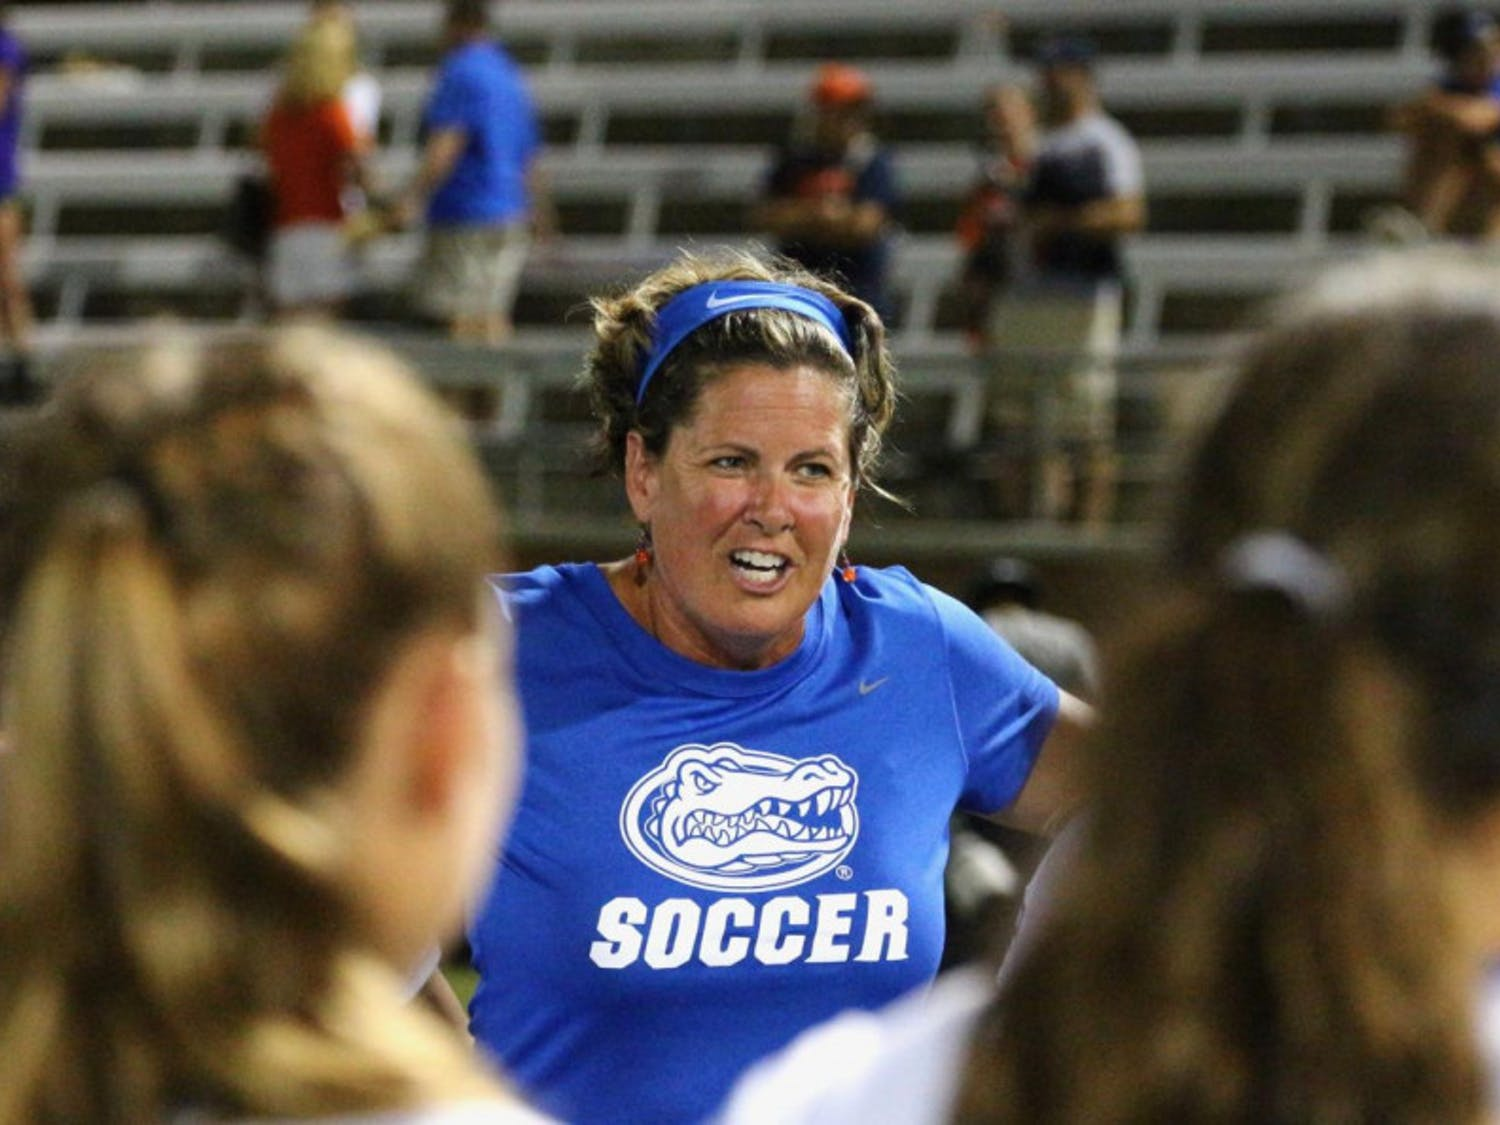 Gators coach Becky Burleigh made her return to in-person coaching this weekend when Florida played Kentucky on Friday and Missouri on Sunday. UF dropped both out-of-town games, extending its program record for consecutive losses to six.